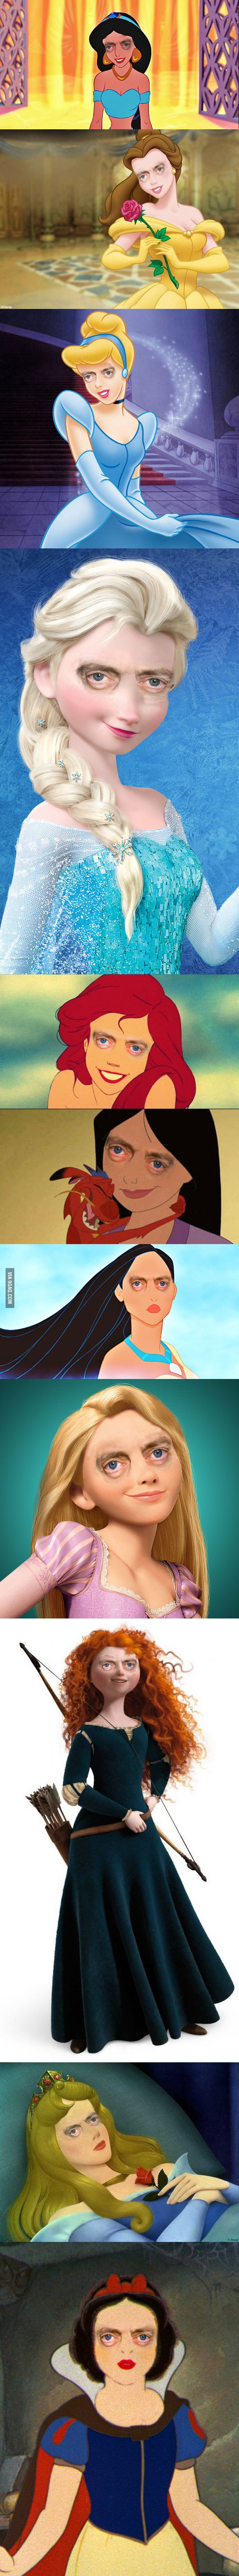 Disney Princesses with Steve Buscemi's Eyes - 9GAG